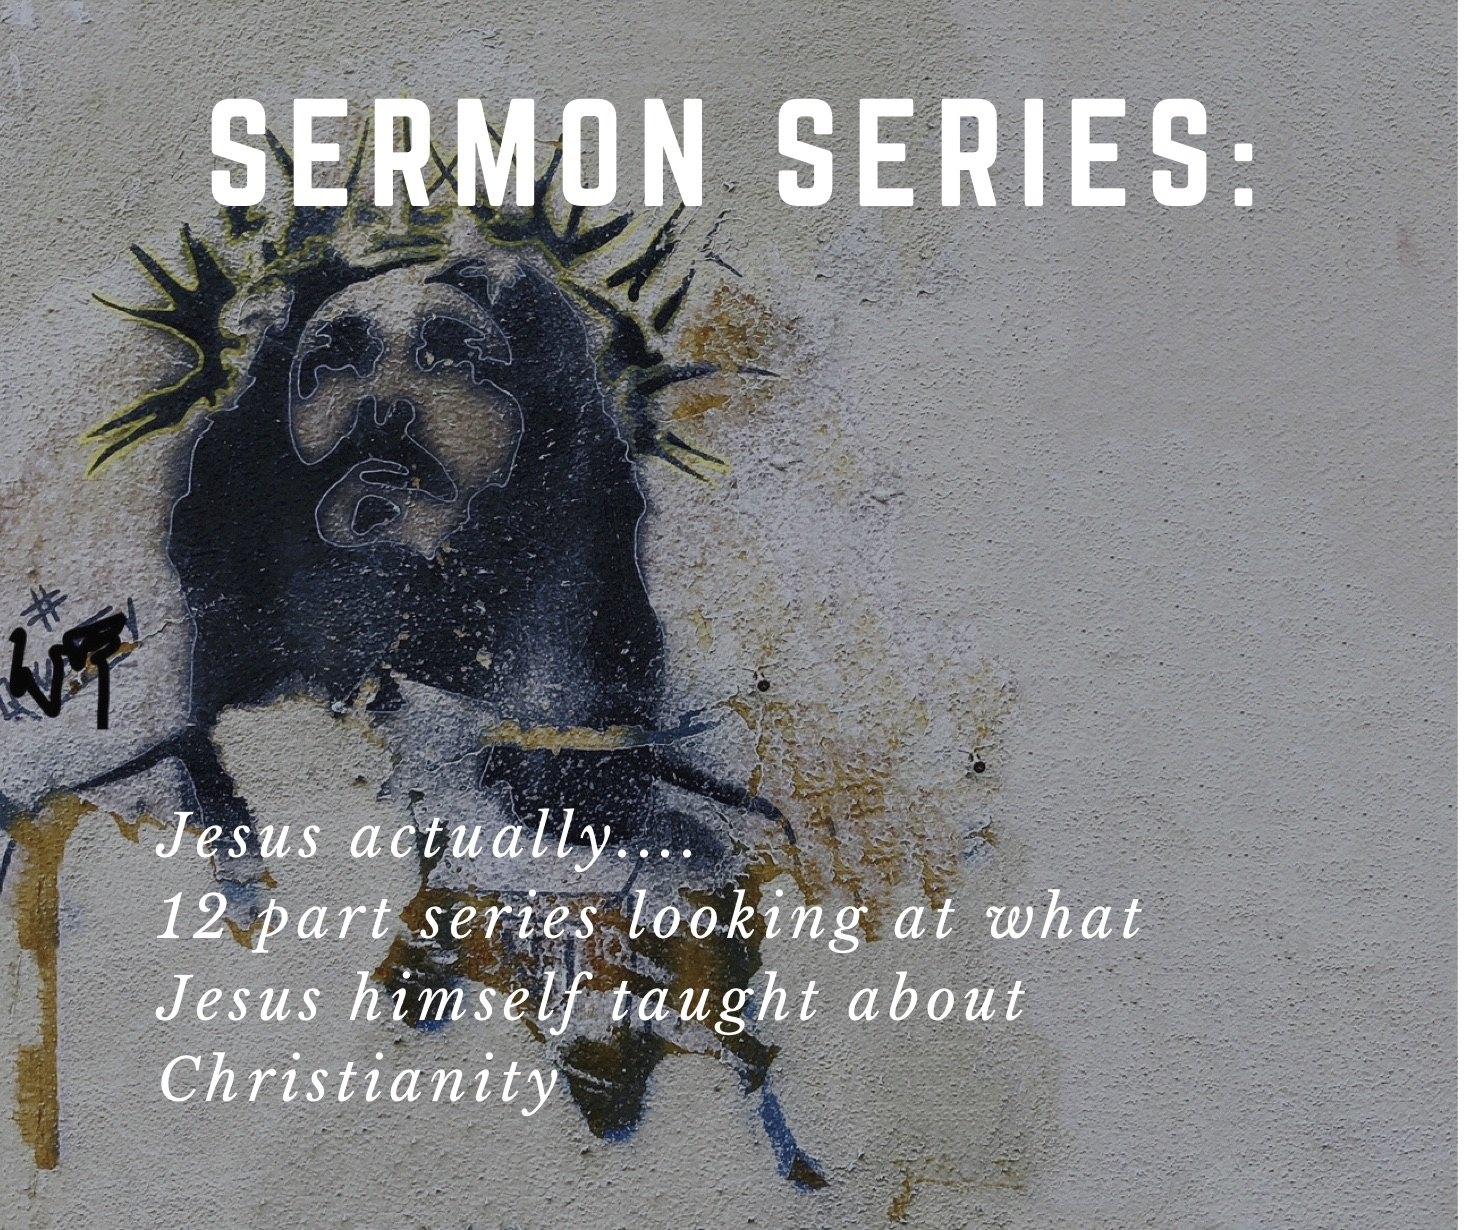 This 12 part sermon series from the gospel of matthew looks at what jesus actually taught about Christianity -